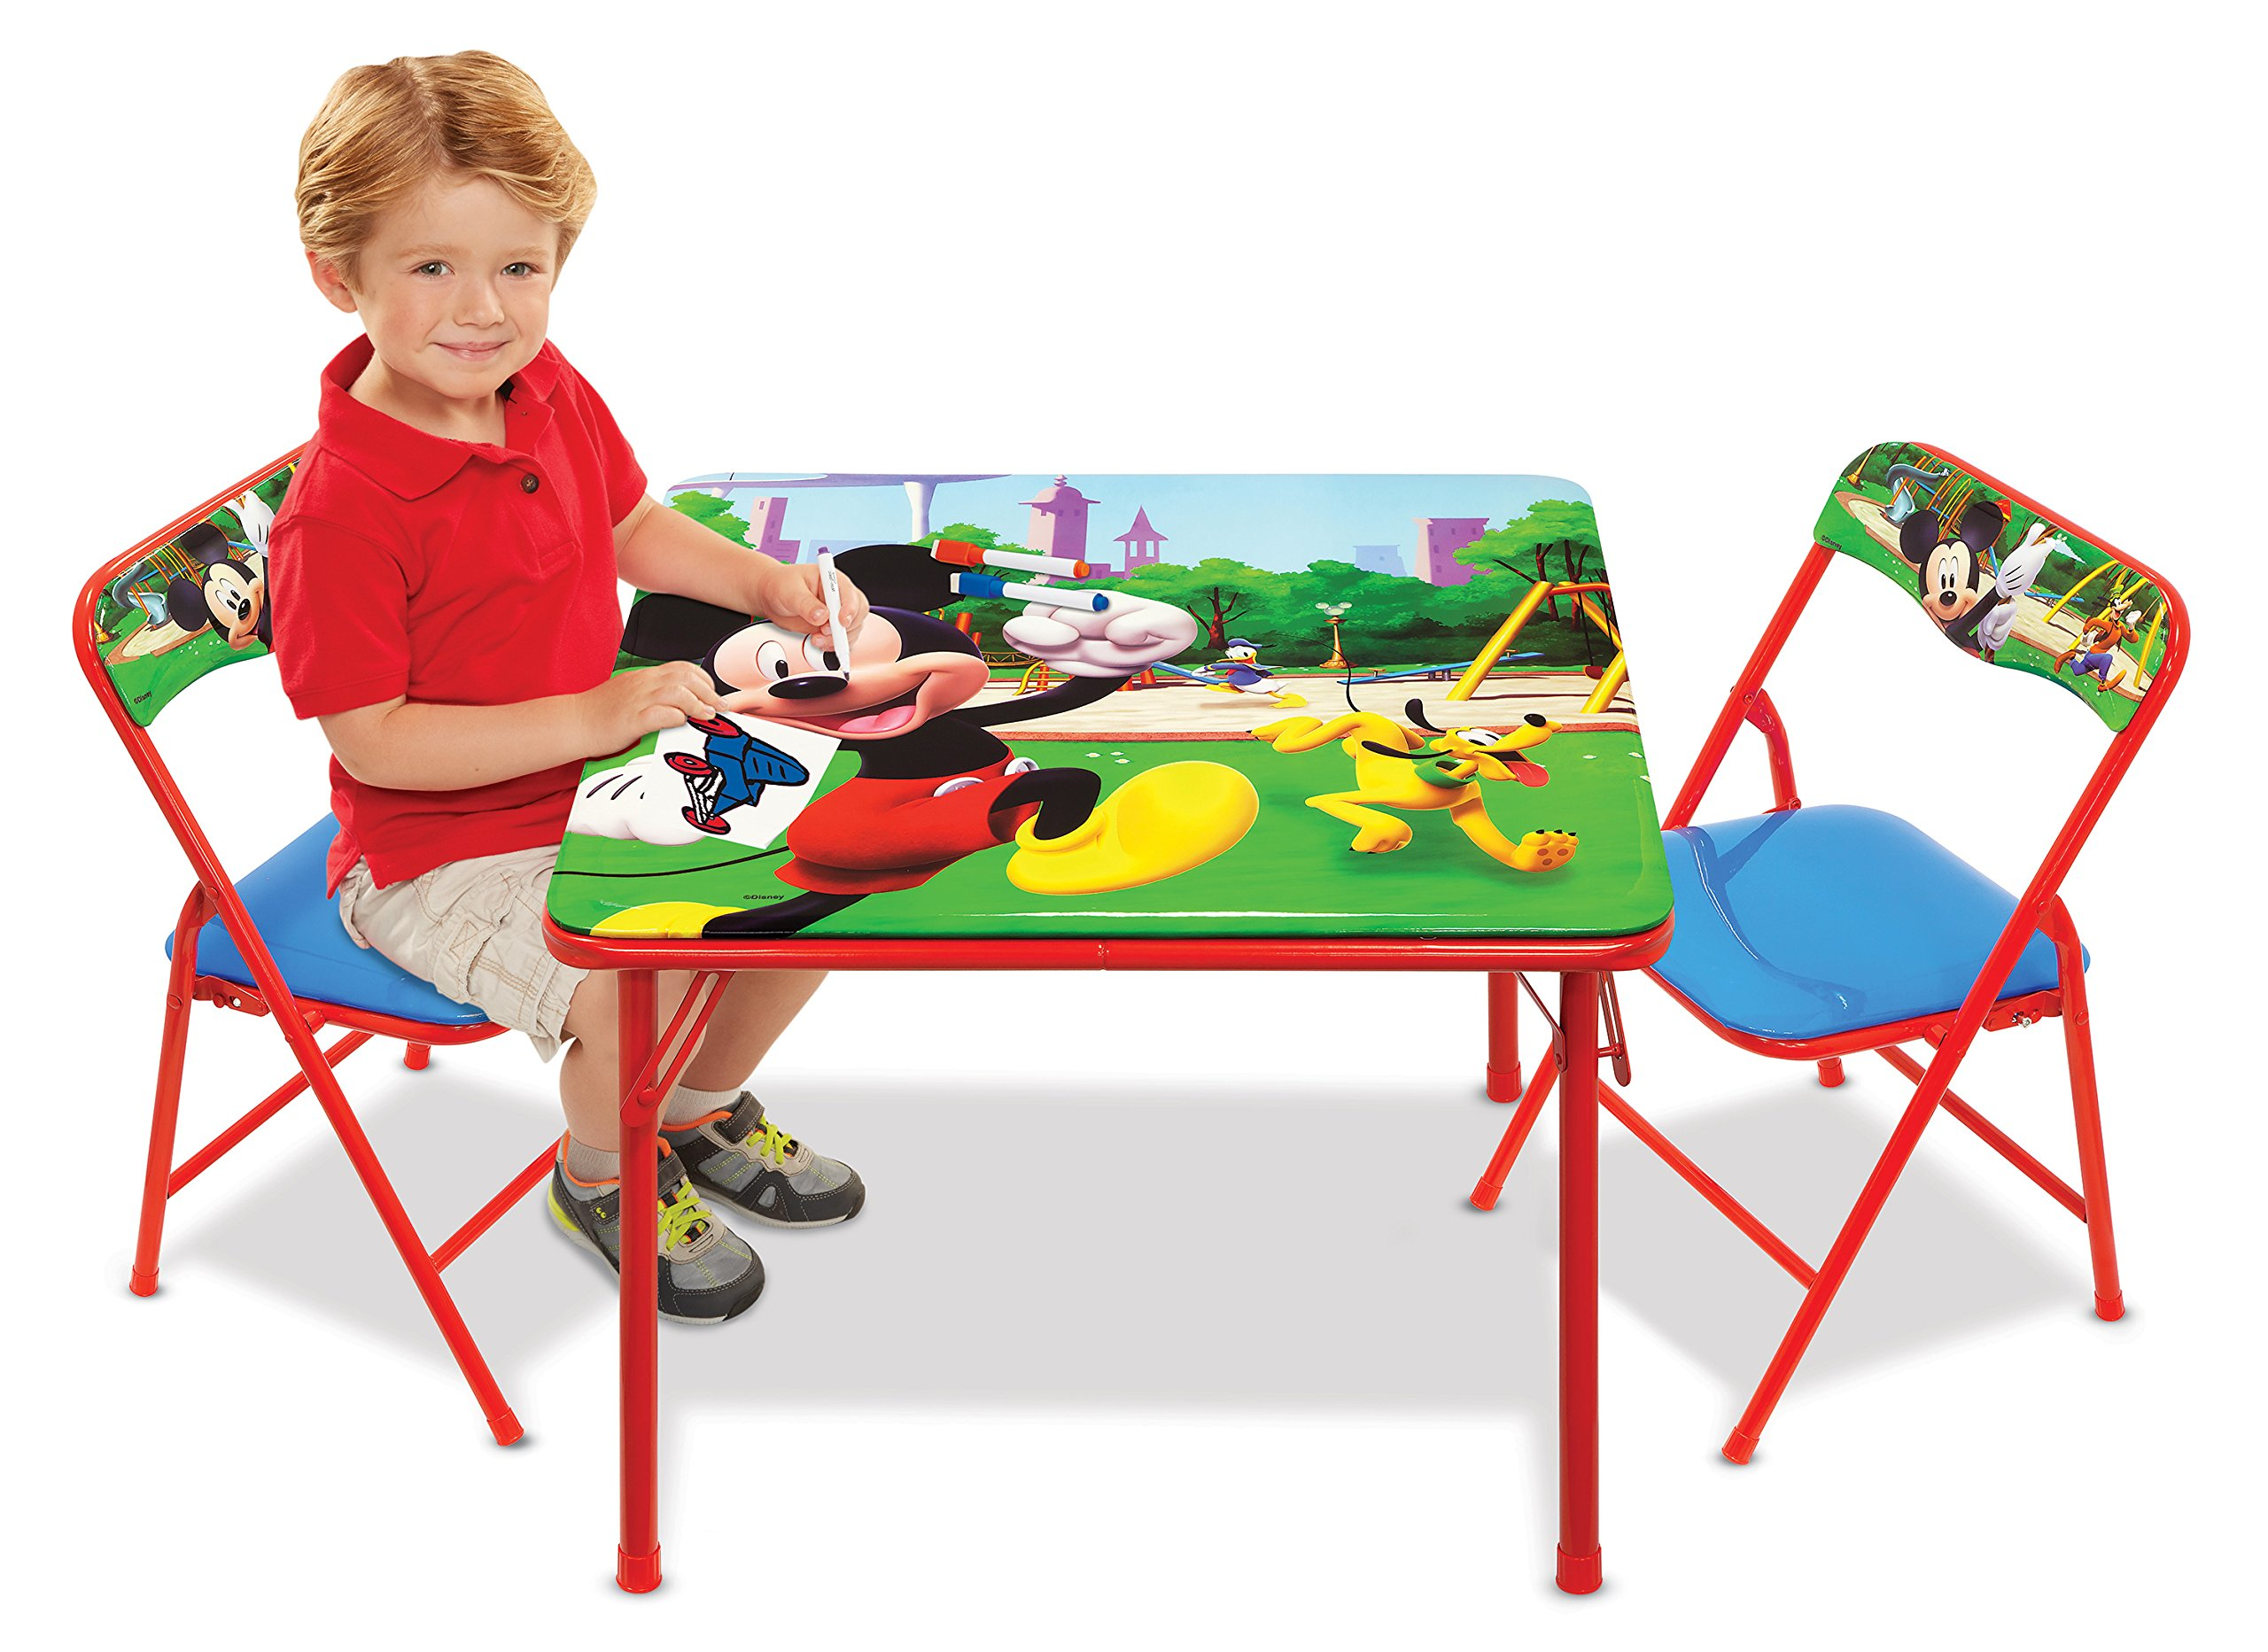 Mickey Mouse Table & Chairs Set For Kids - Furniture by Jakks